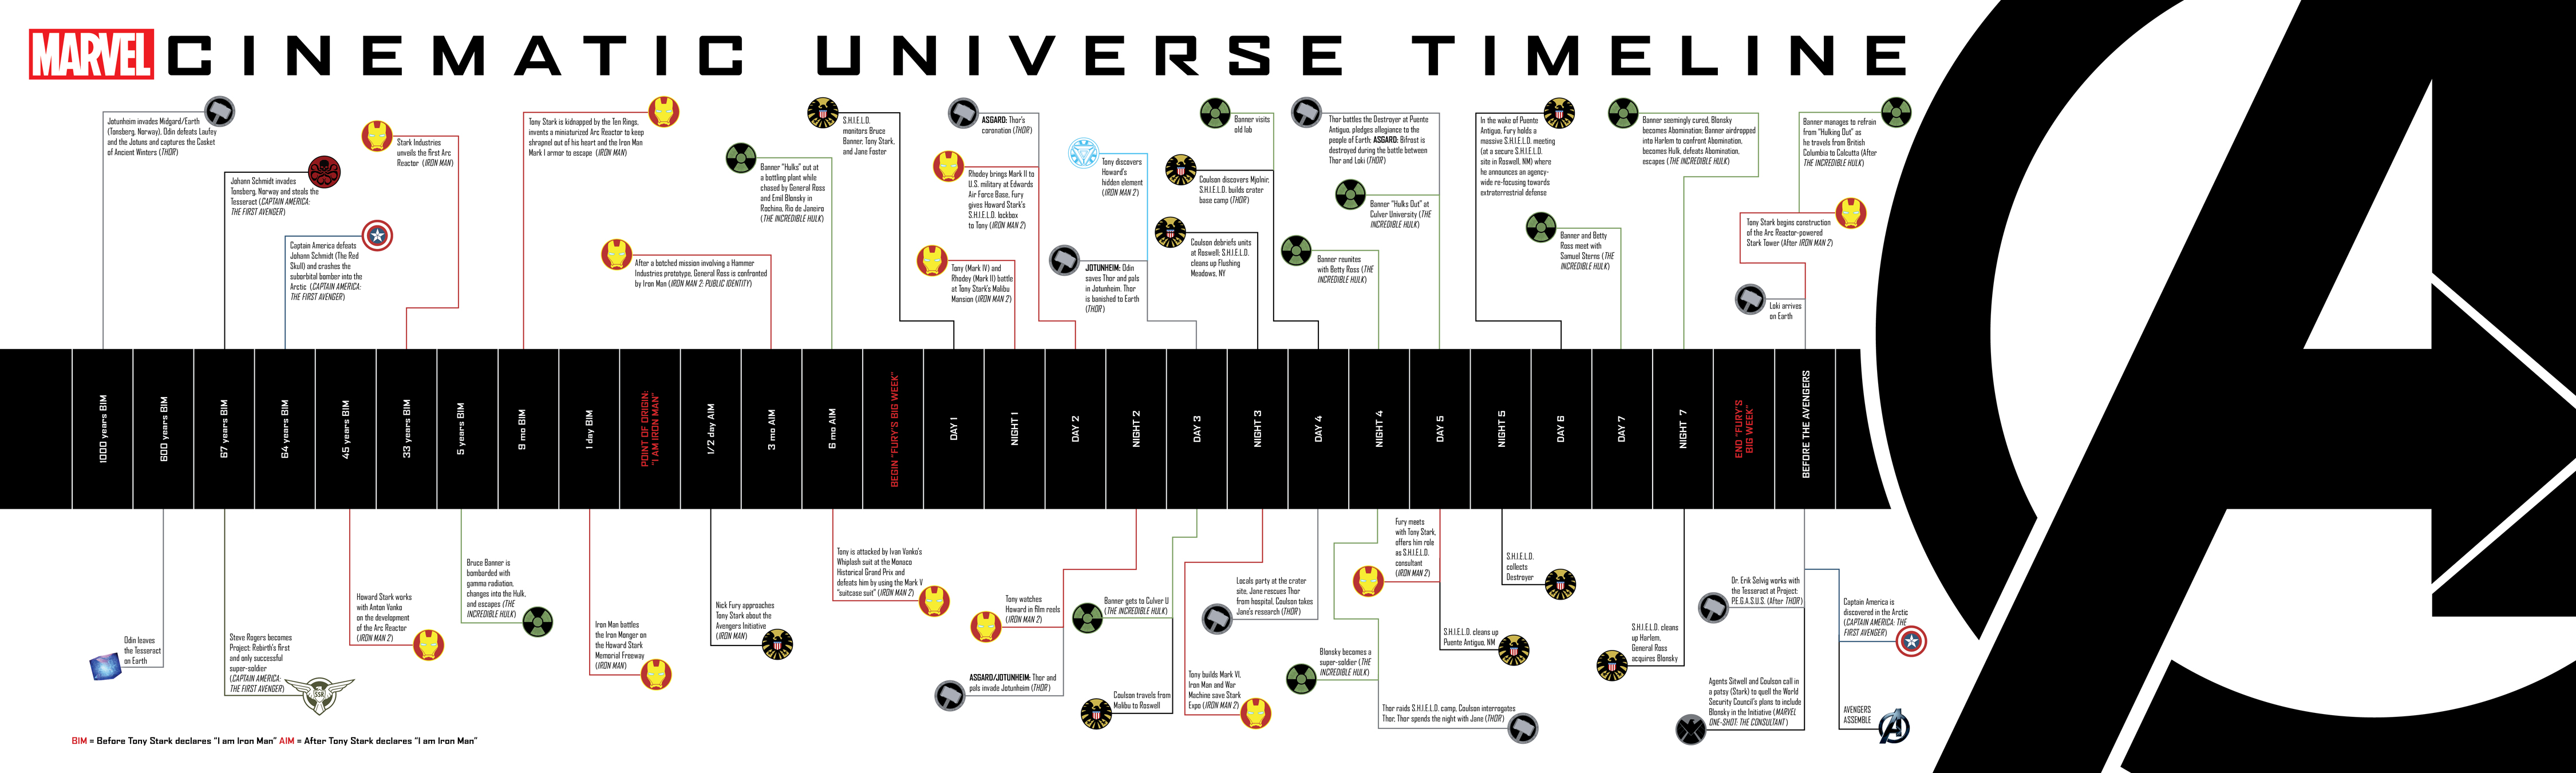 The Marvel Cinematic Universe Timeline from The Art of the Avengers